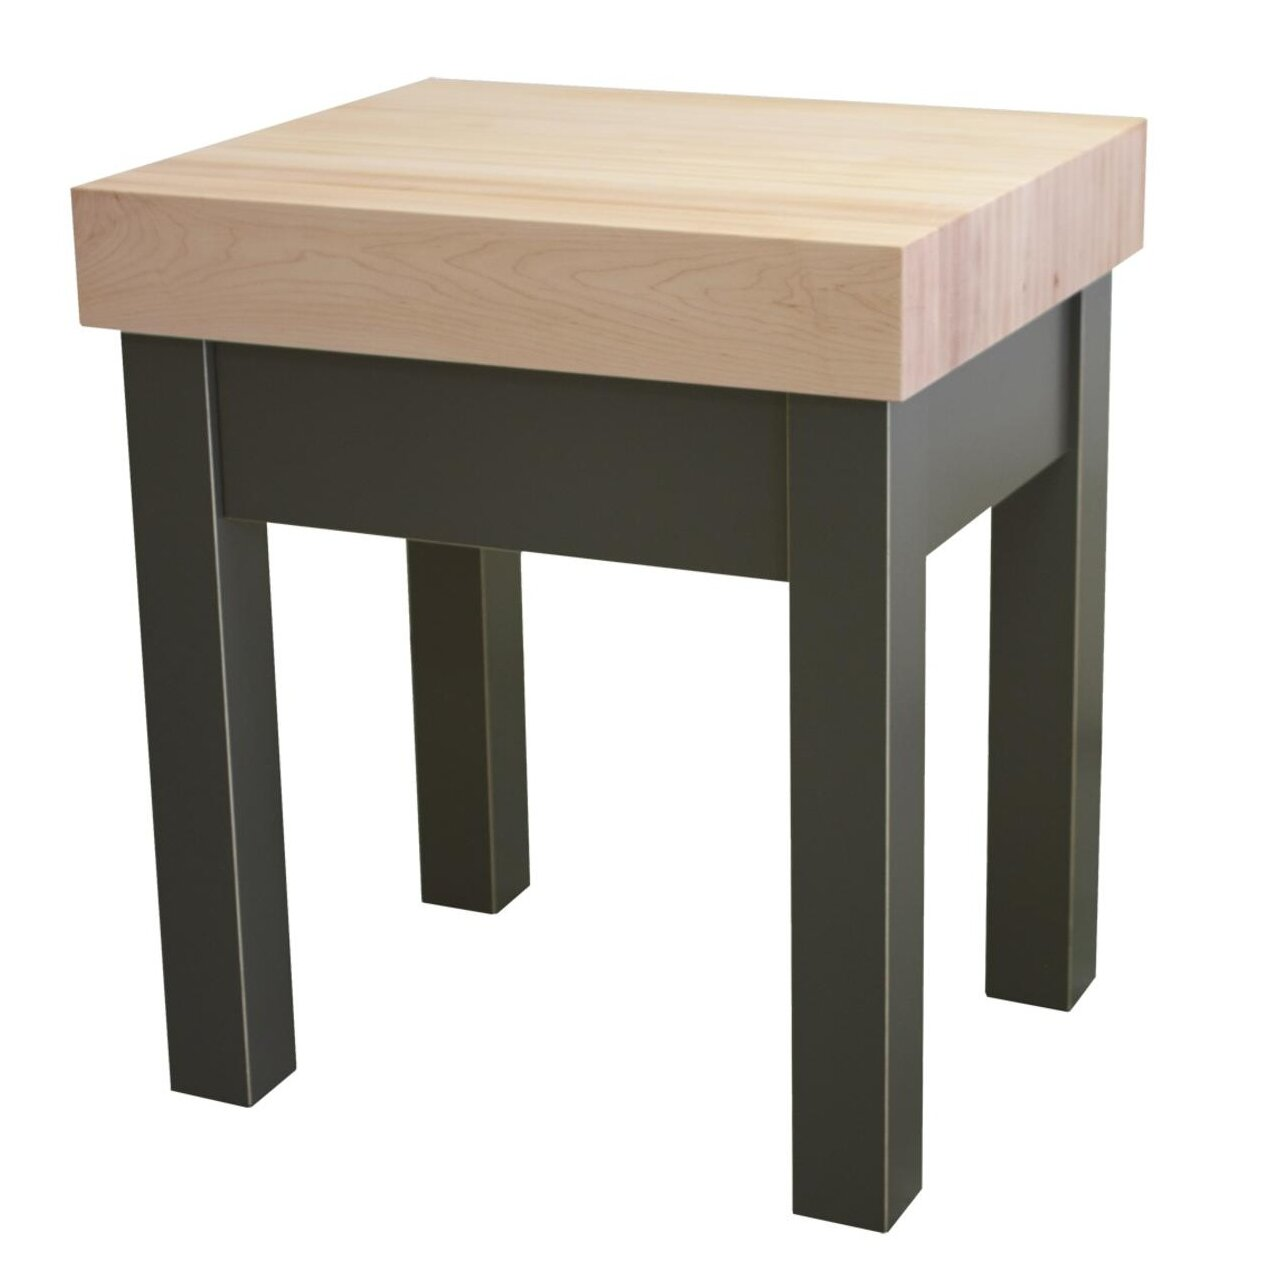 Prep Table with Butcher Block Top | Wayfair.ca